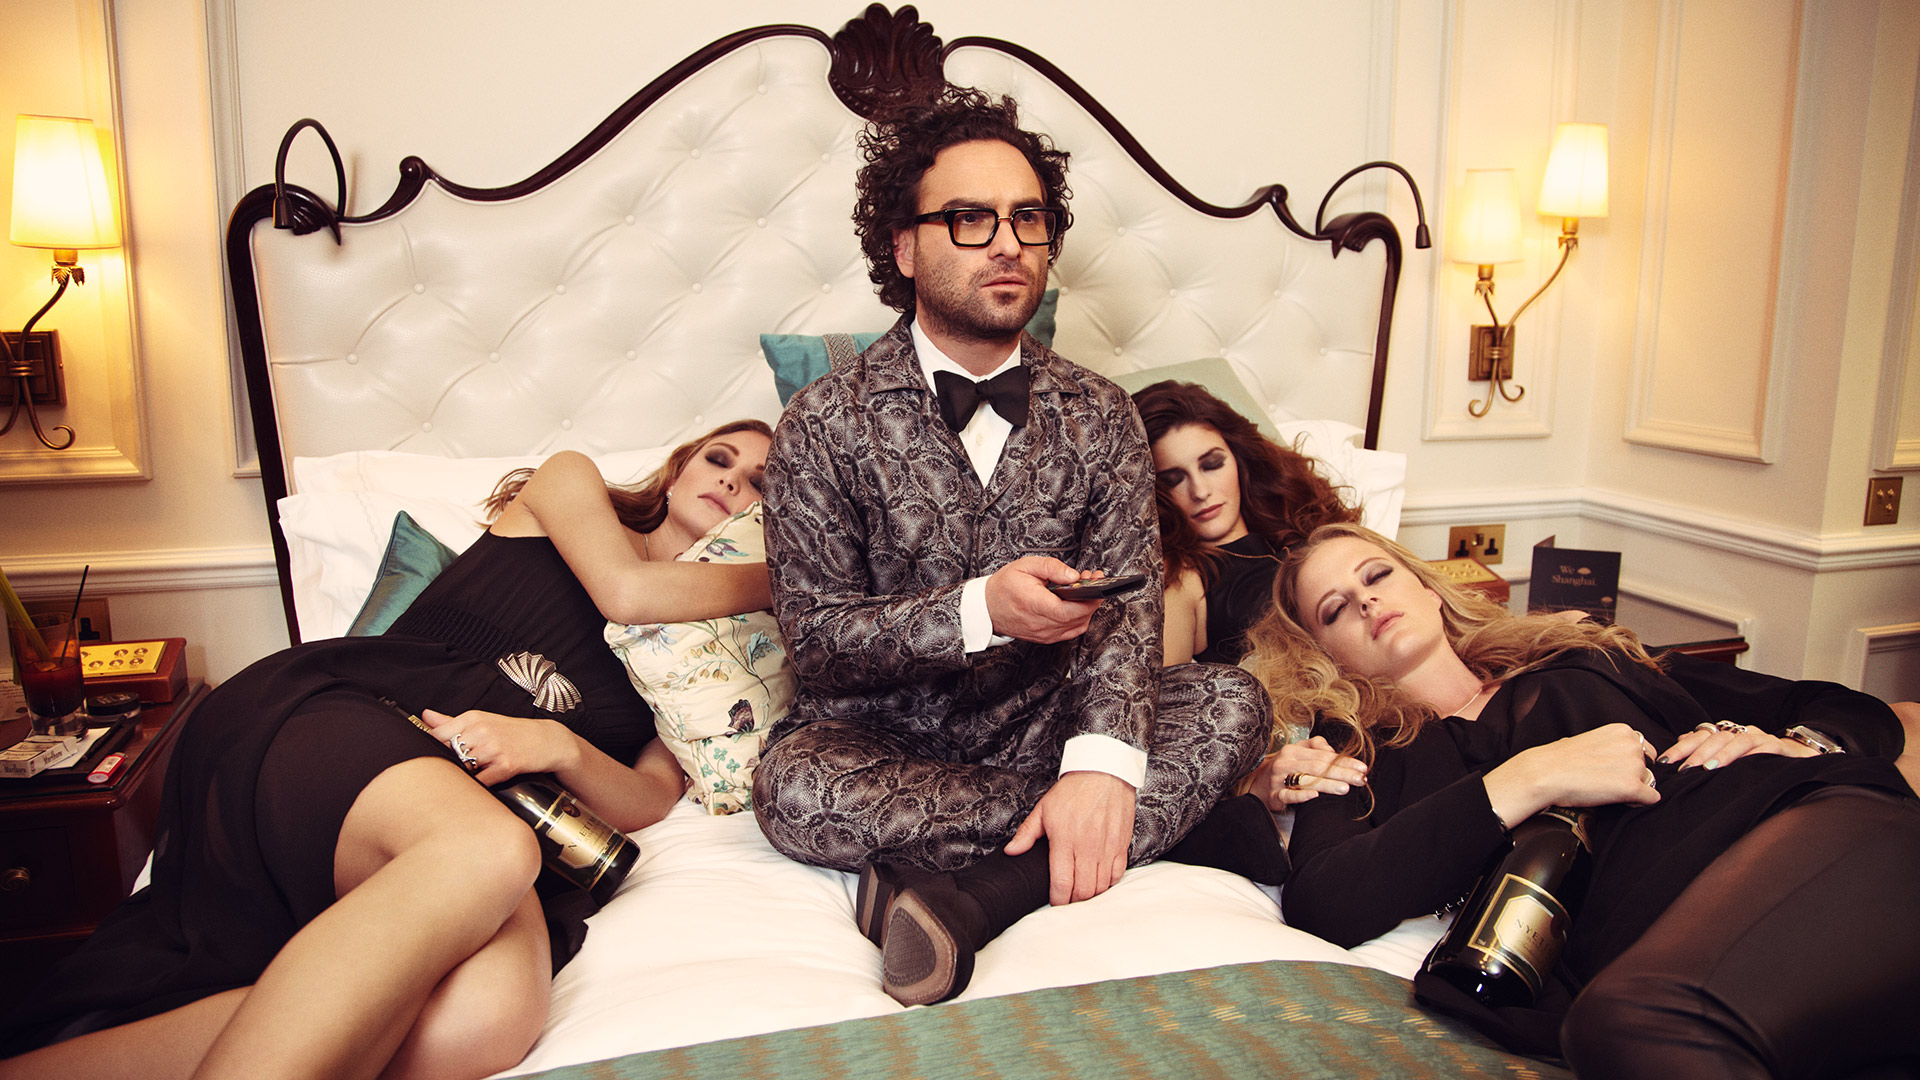 Johnny Galecki watches TV with some friends